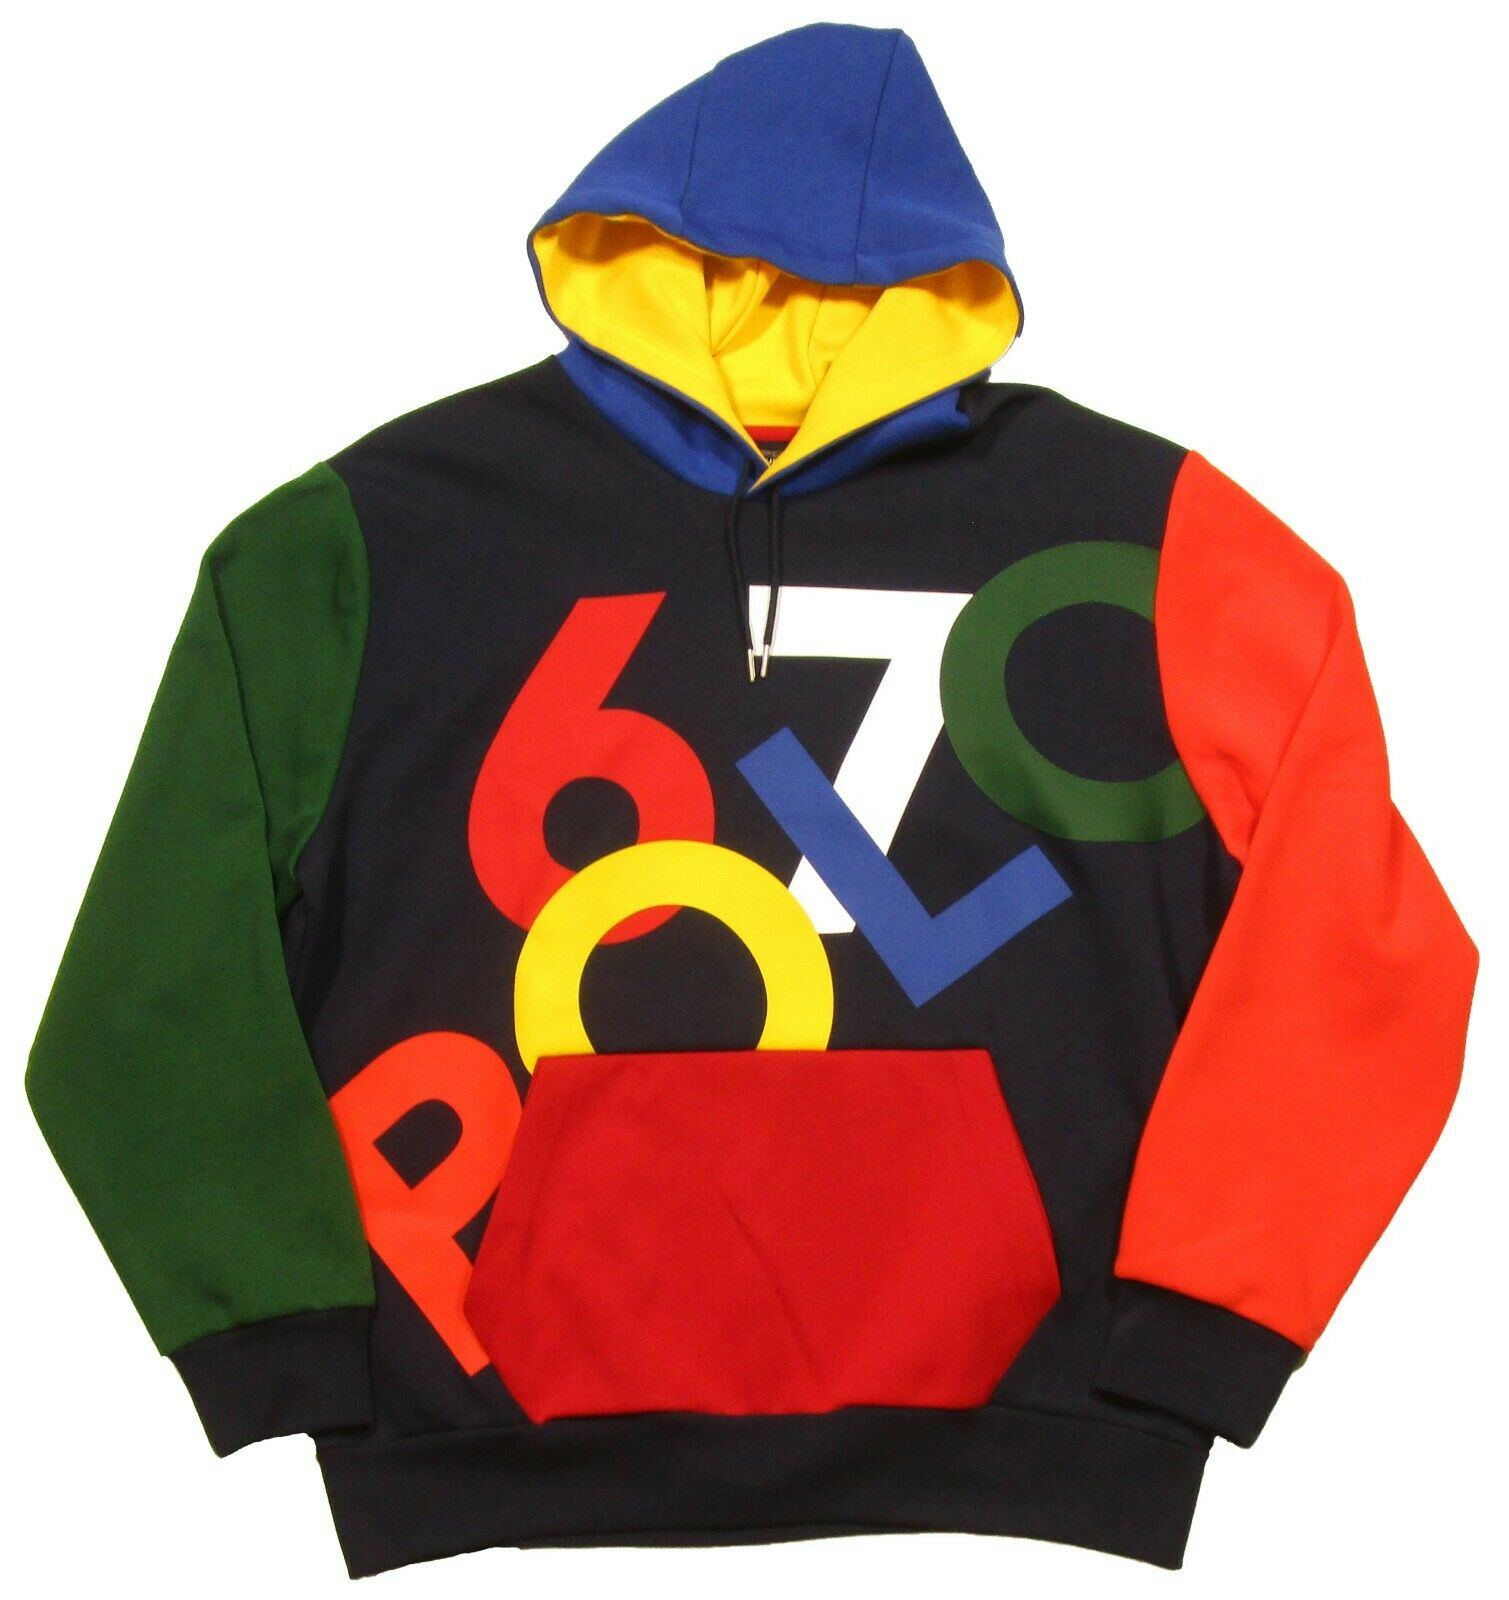 Polo Sport Ralph Lauren Men's Cruise Navy Double Knit Graphic Pullover Hoodie